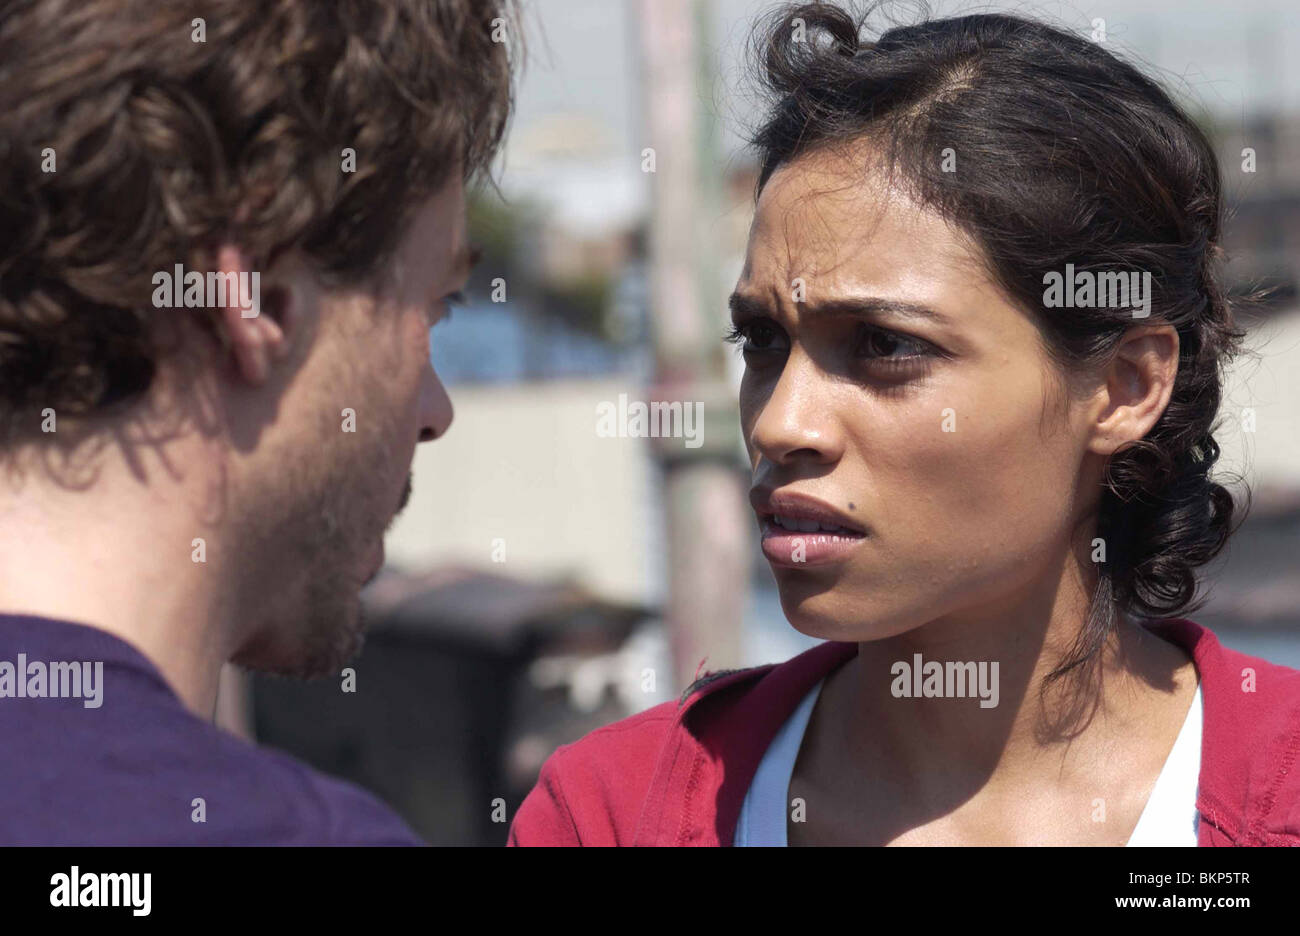 A GUIDE TO RECOGNIZING YOUR SAINTS (2006) ROSARIO DAWSON AGTR 001-01 - Stock Image